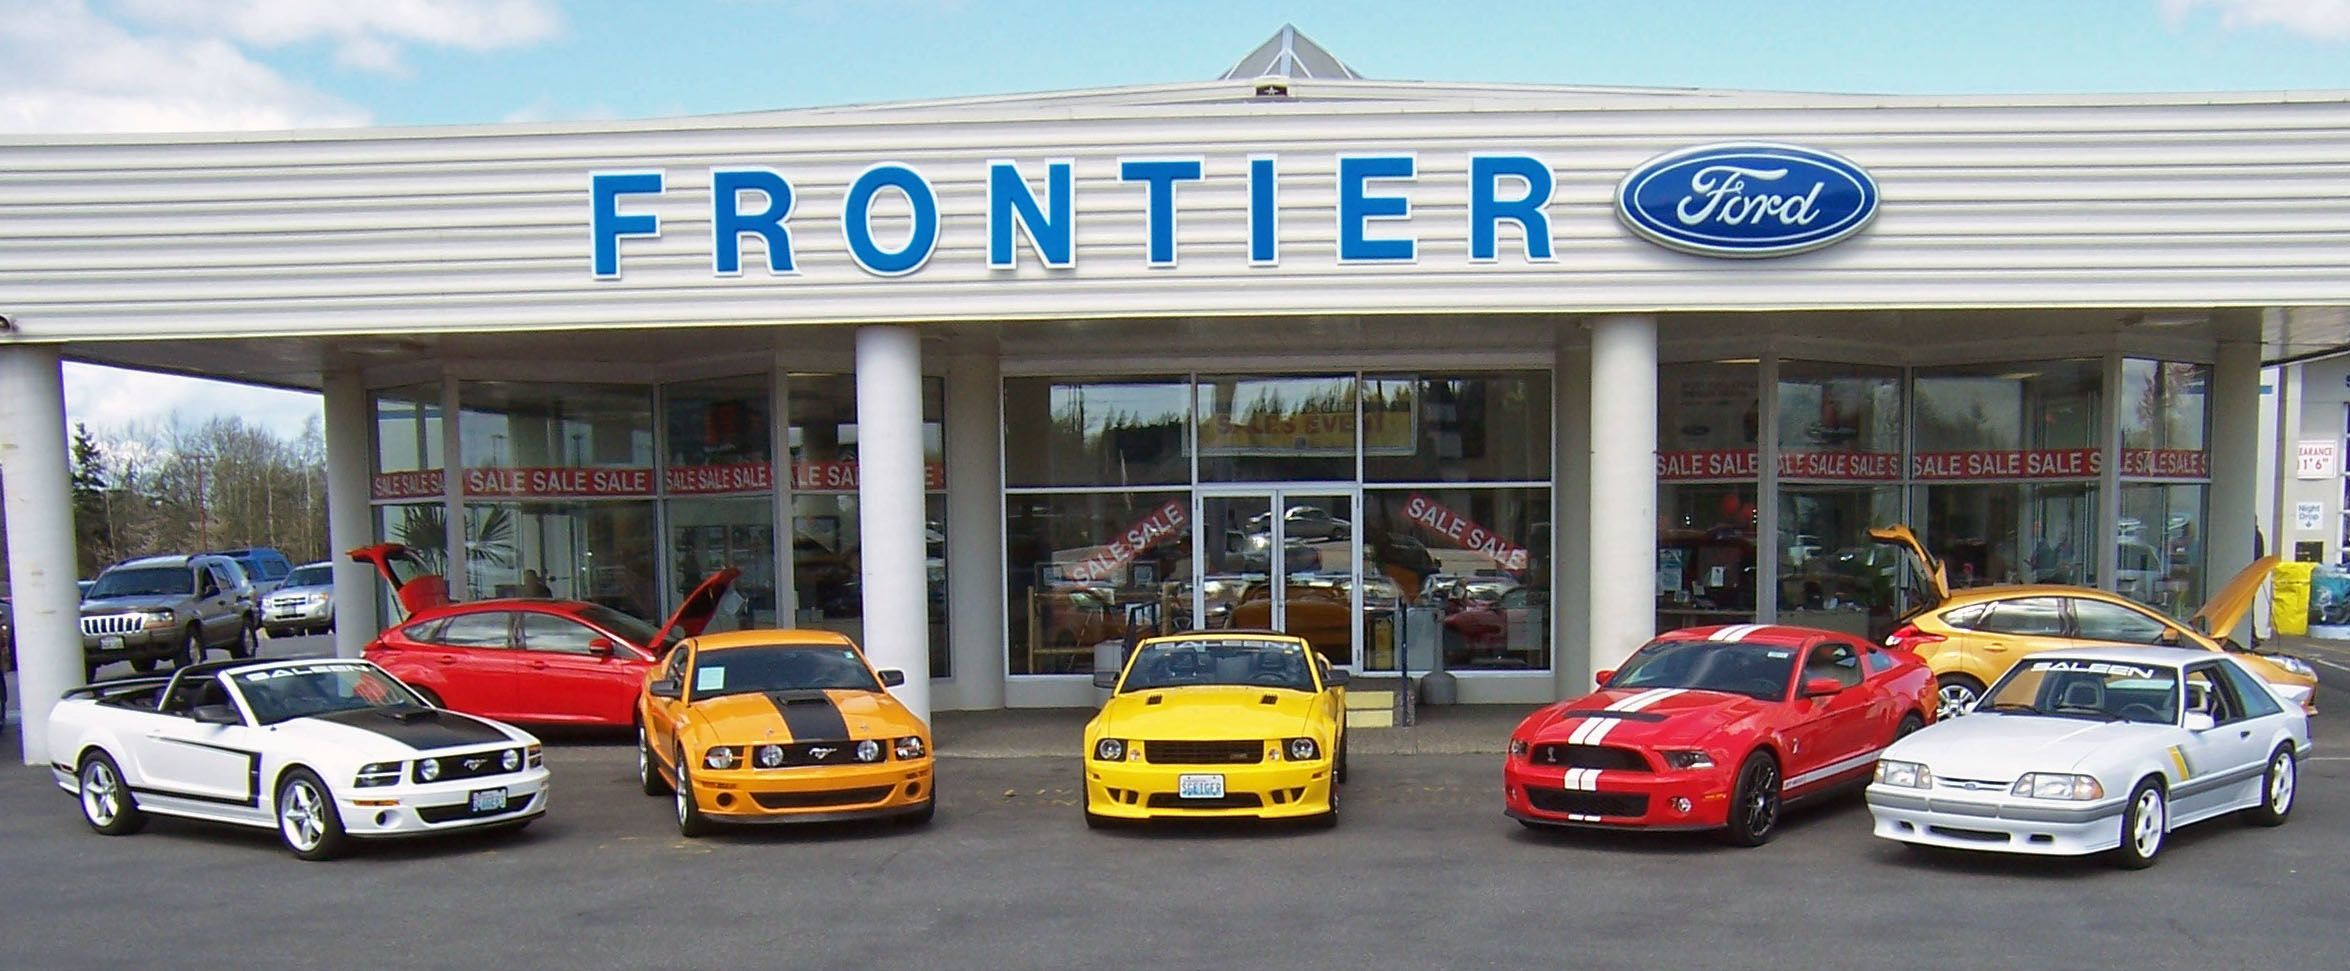 Frontier Ford Anacortes >> Employment Job Opportunities Frontier Ford In Anacortes